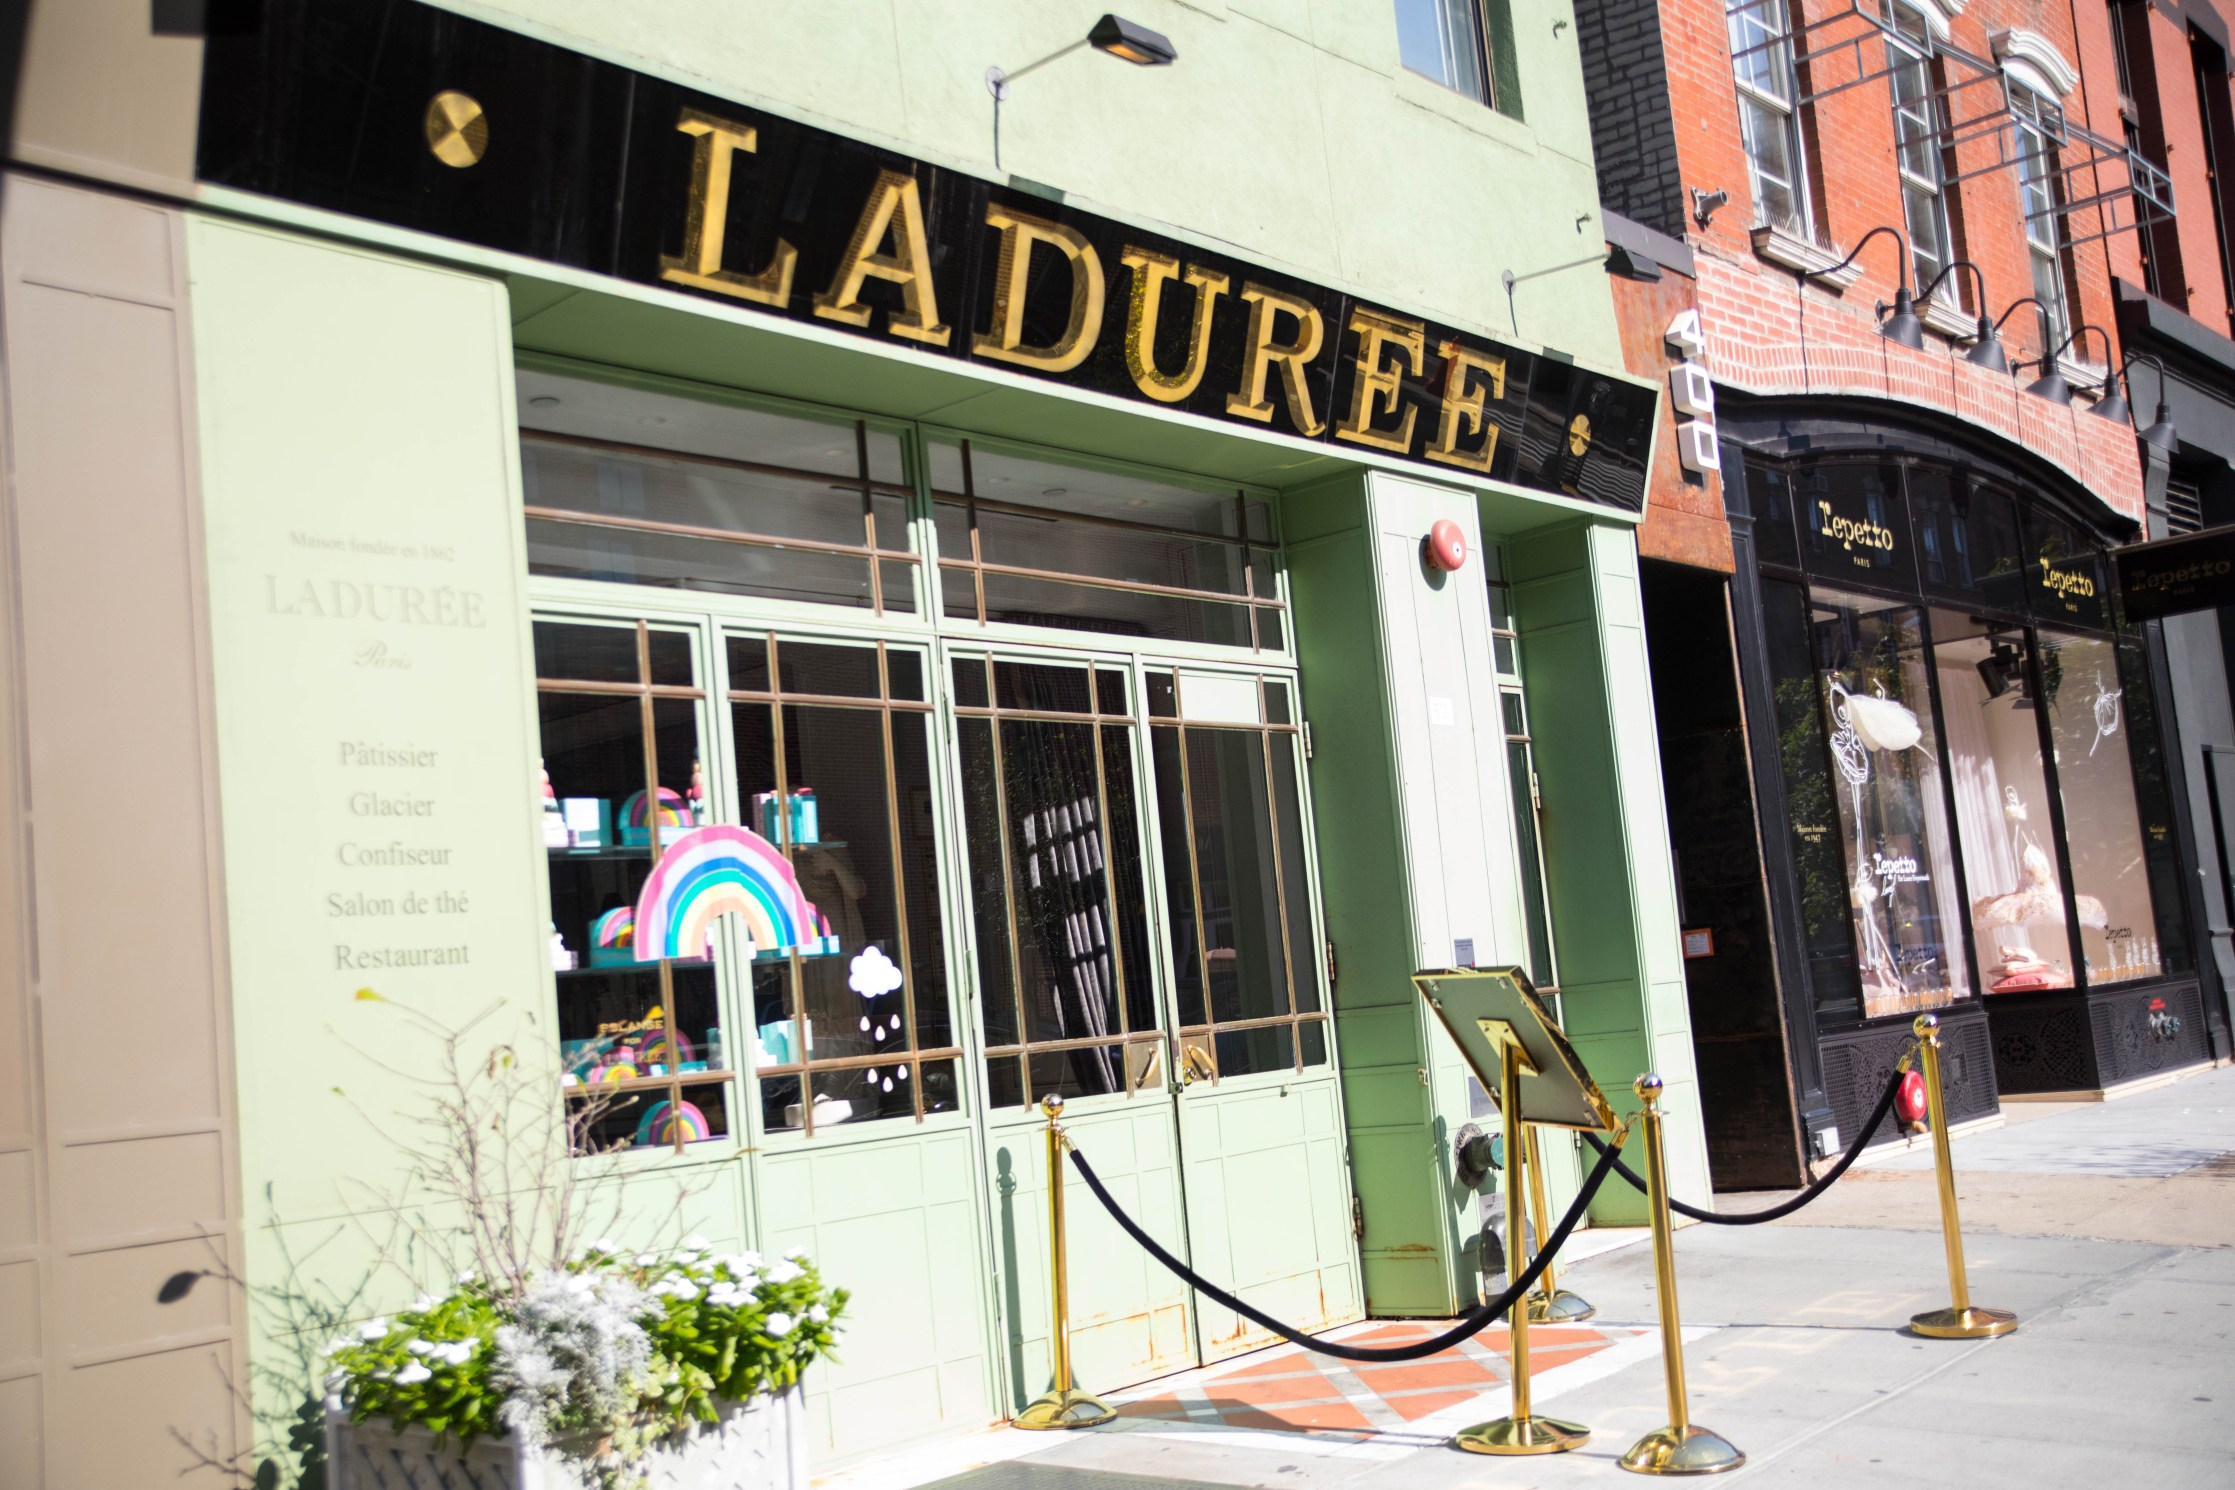 Ladurée in Soho New York